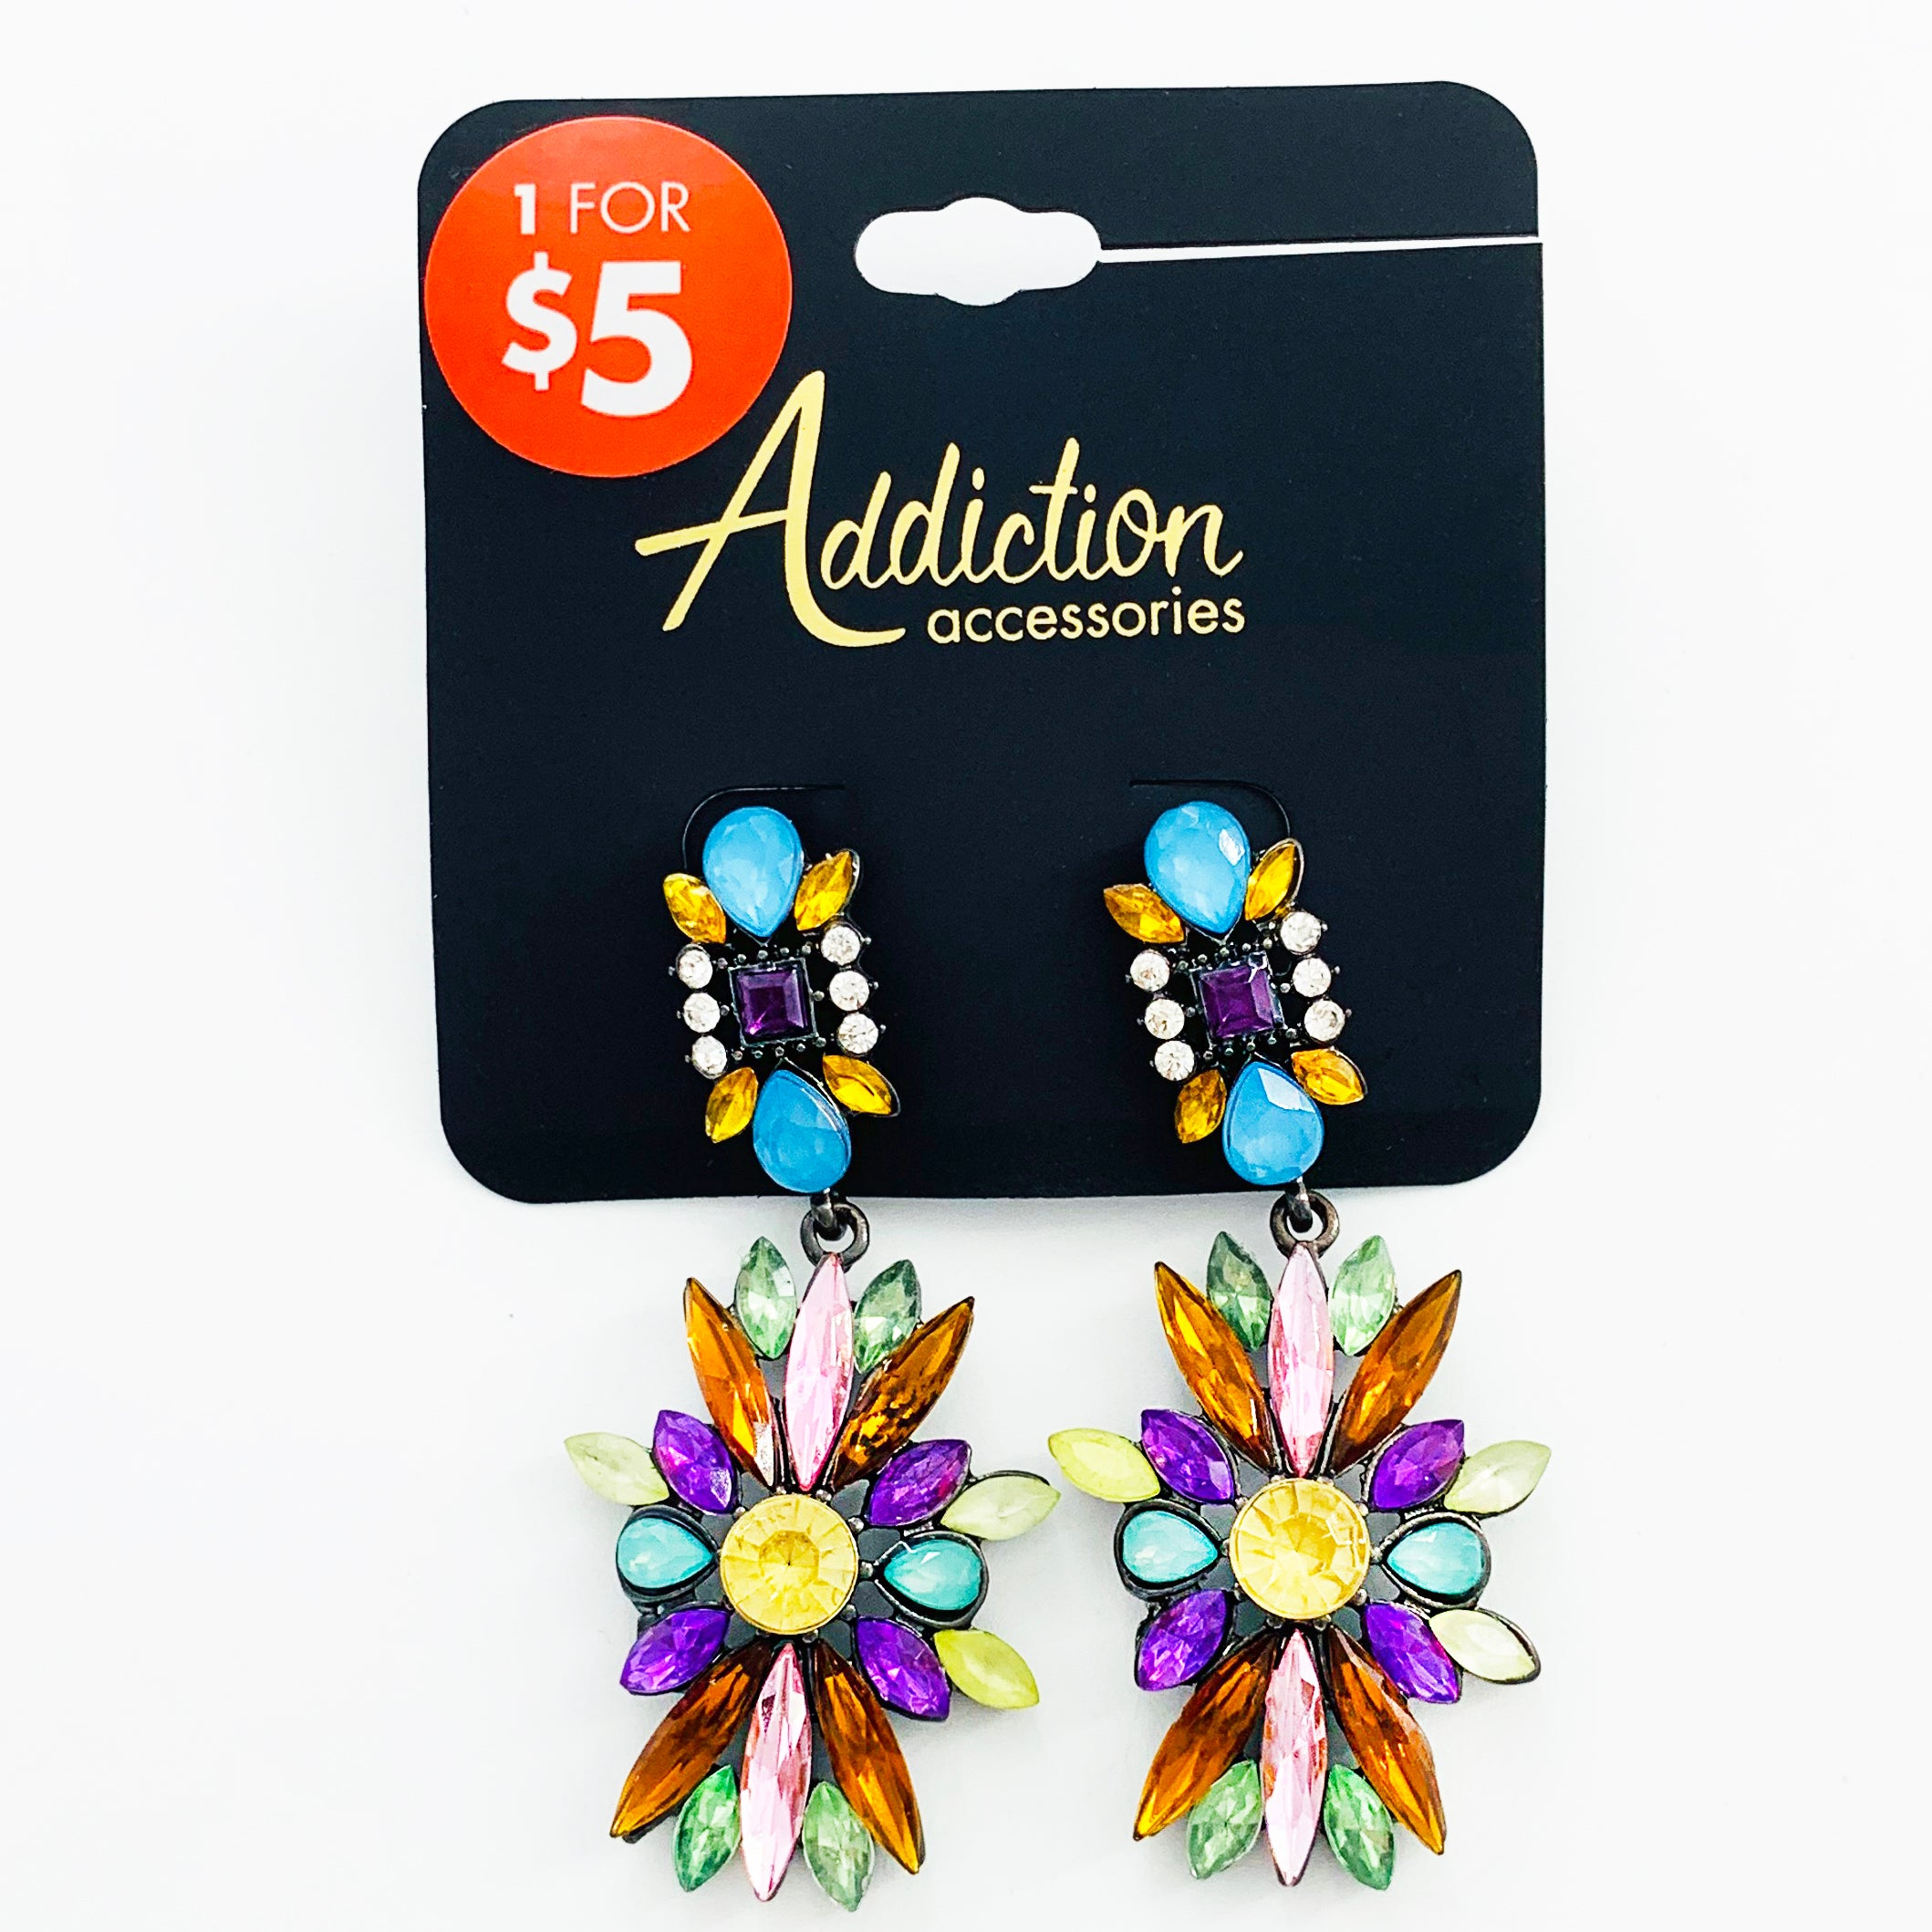 Art-deco inspired starburst earrings with colourful stones